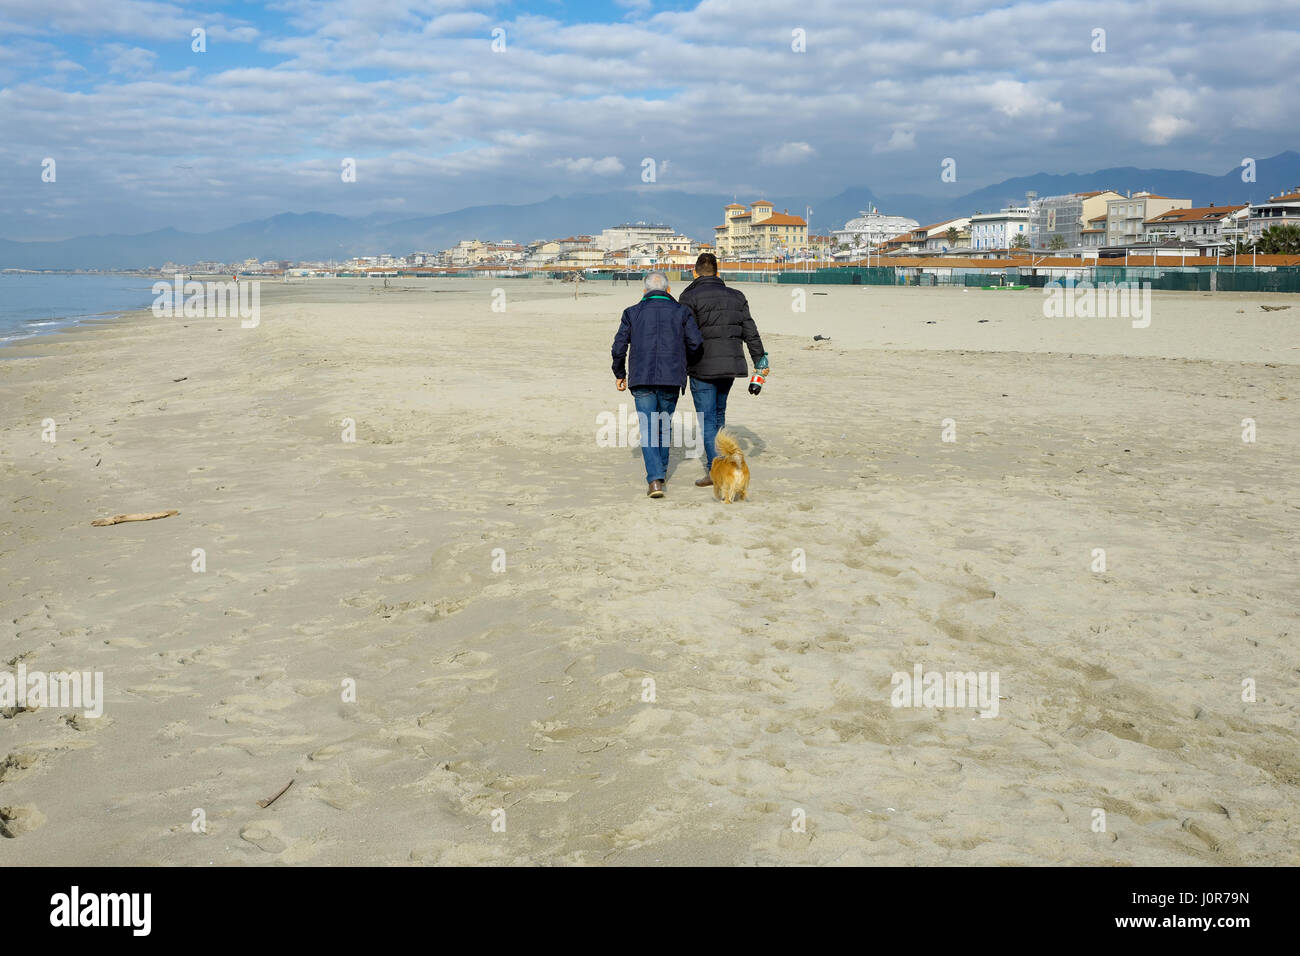 Father and son from behind while walking together with their small dog on a sand beach in winter, Viareggio, Tuscany, - Stock Image